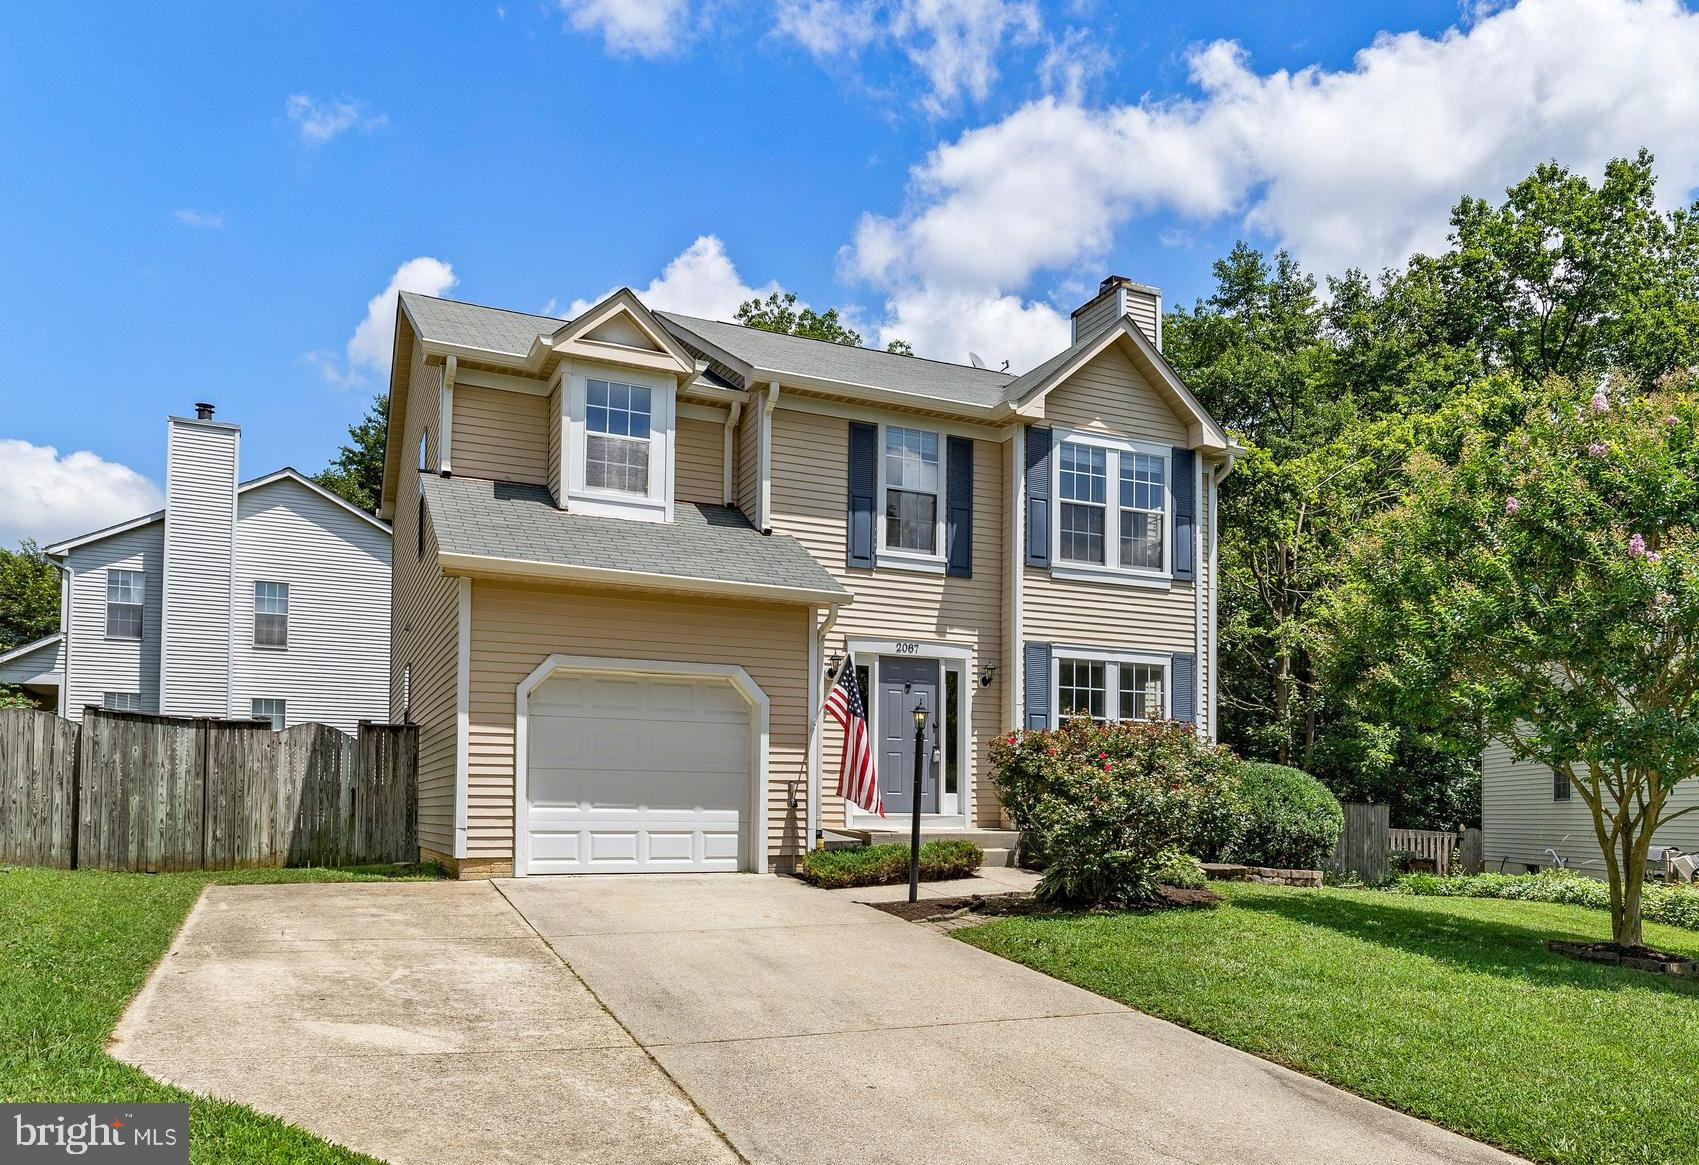 ***OPEN HOUSE Saturday 7/11 and Sunday 7/12 from 12:00-2:00pm***Welcome home to 2087 Lower Court nes